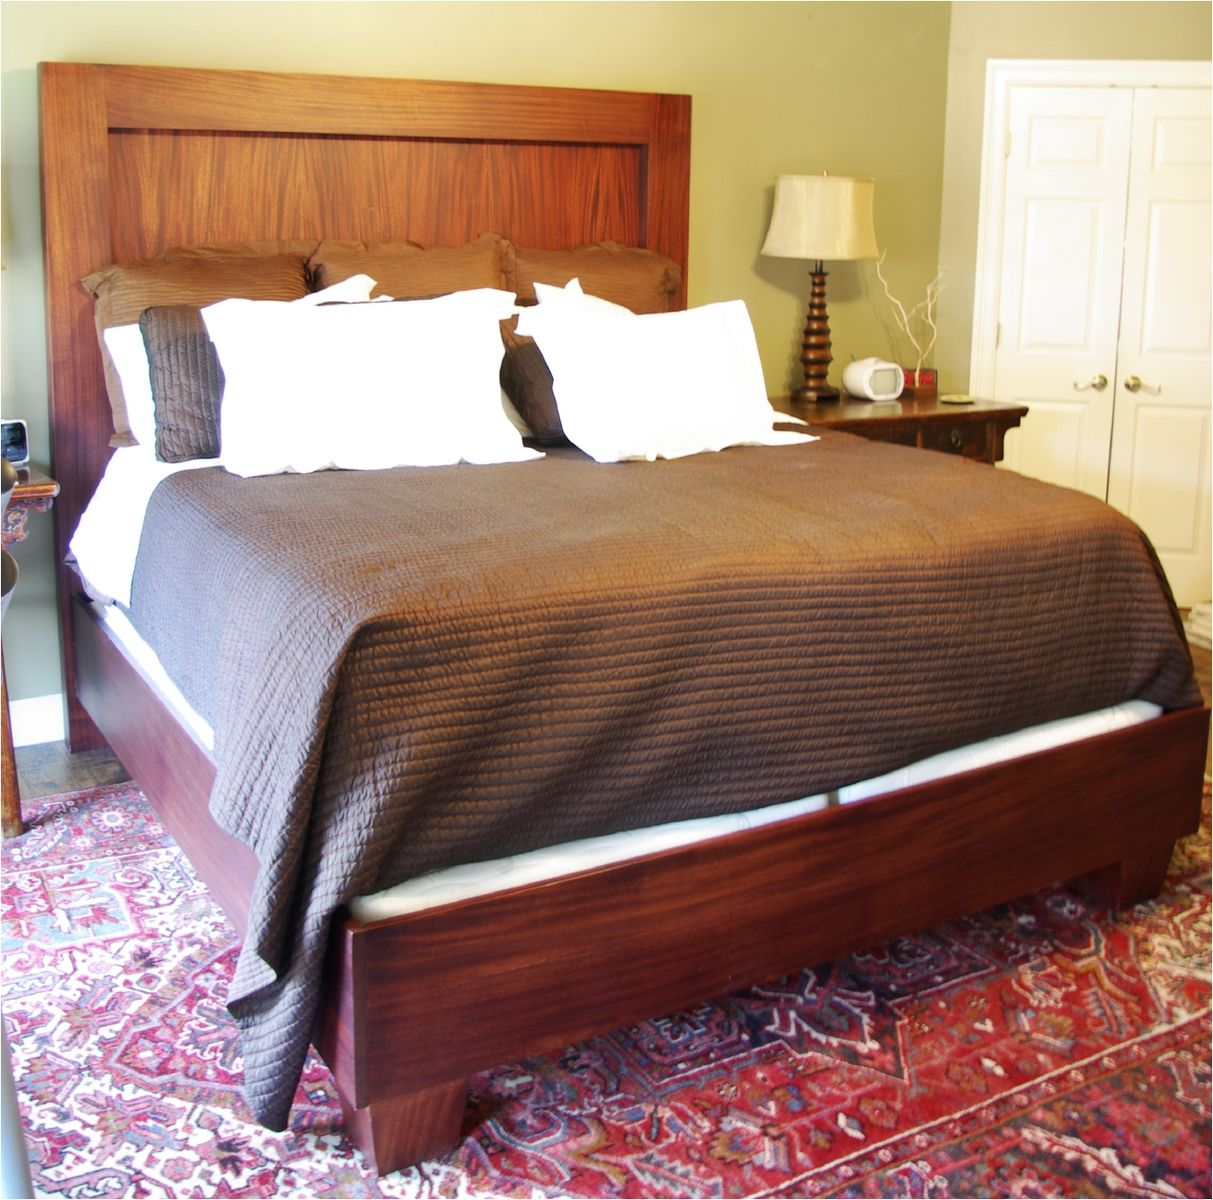 Solid Mahogany Bedroom Furniture Hand Crafted African Mahogany Bed With Solid Bed Rails And Tapered